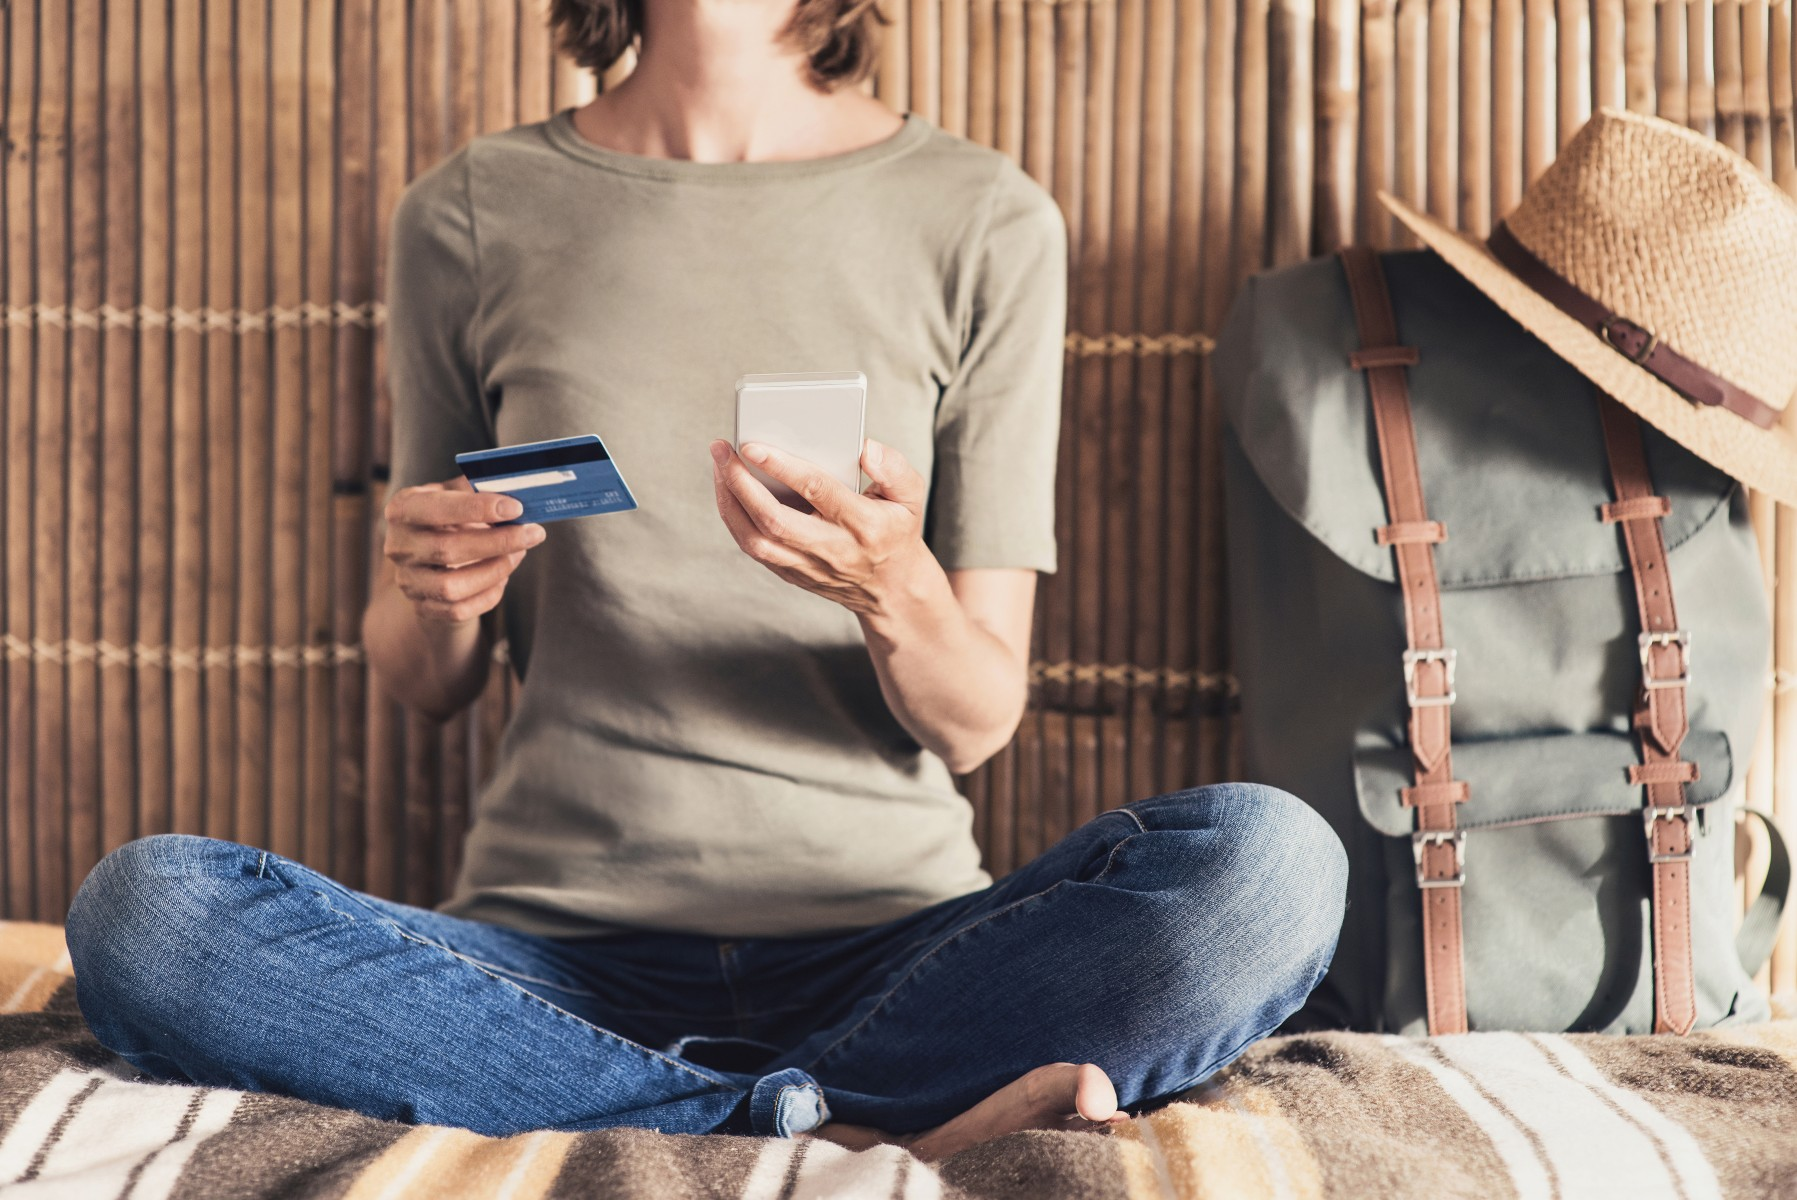 Young woman on vacations using phone and credit card